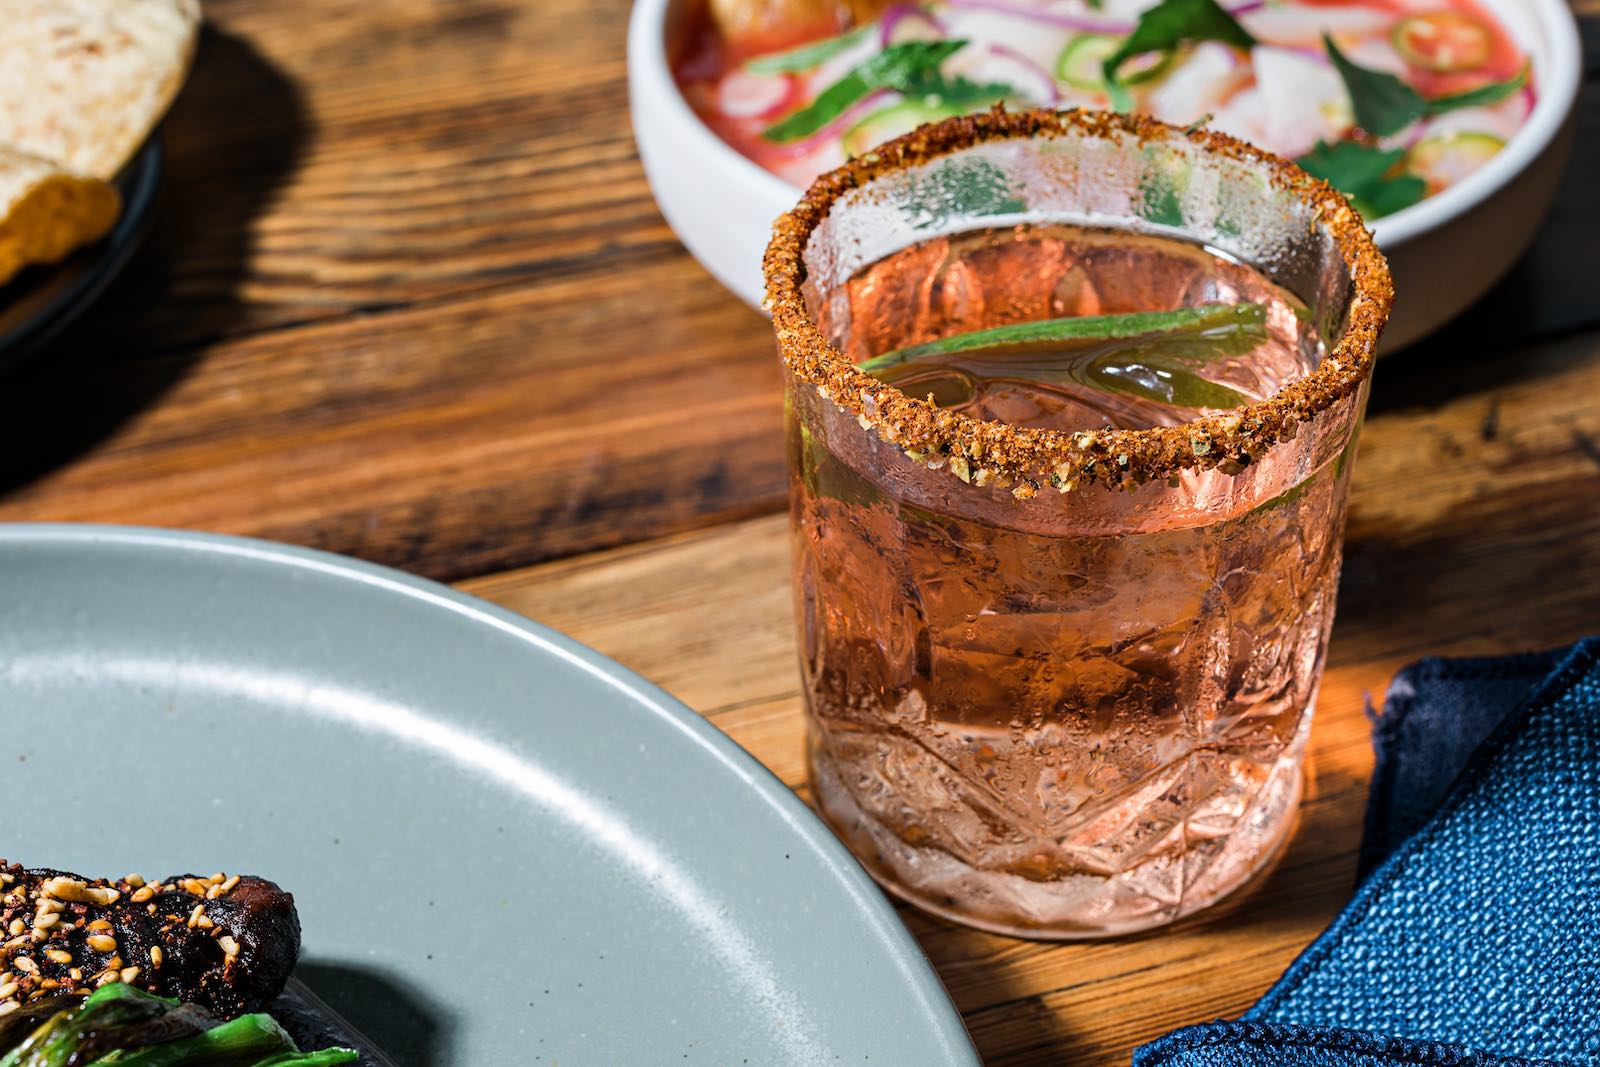 Tequila and mezcal cocktails will accompany regional Mexican dishes at the forthcoming Maya on Upper King